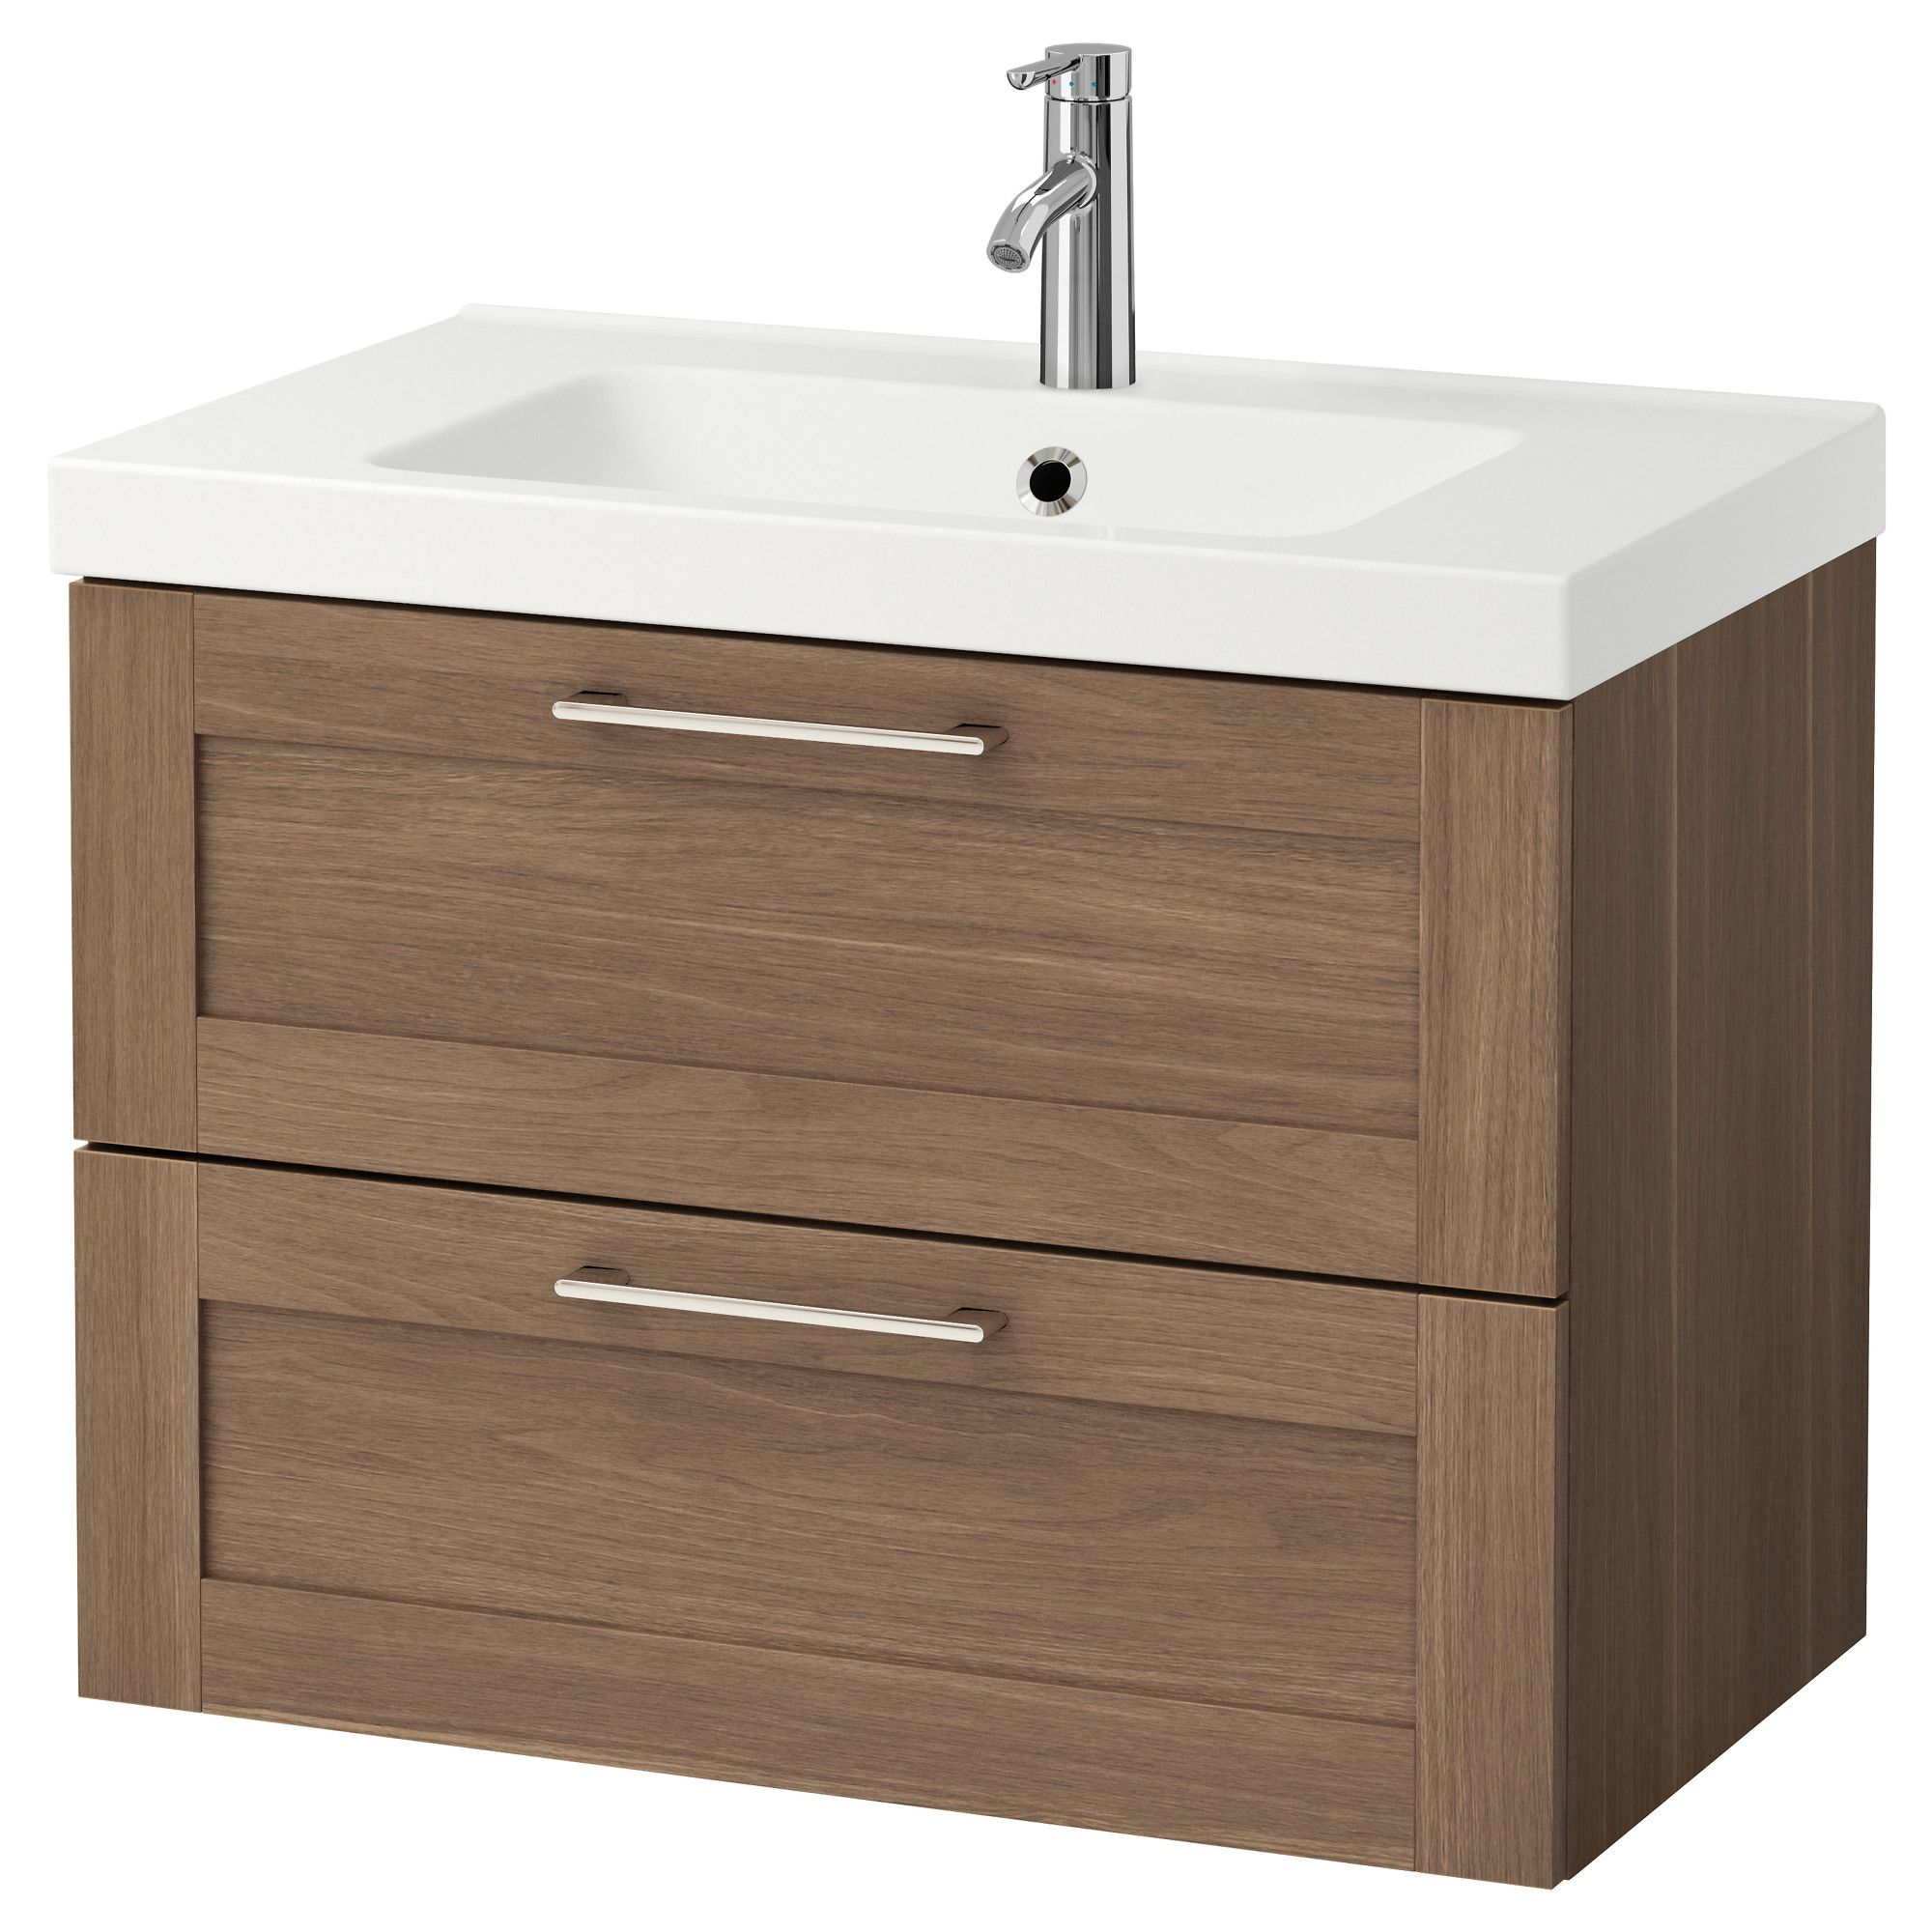 ikea godmorgon odensvik sink cabinet with 2 drawers. Black Bedroom Furniture Sets. Home Design Ideas